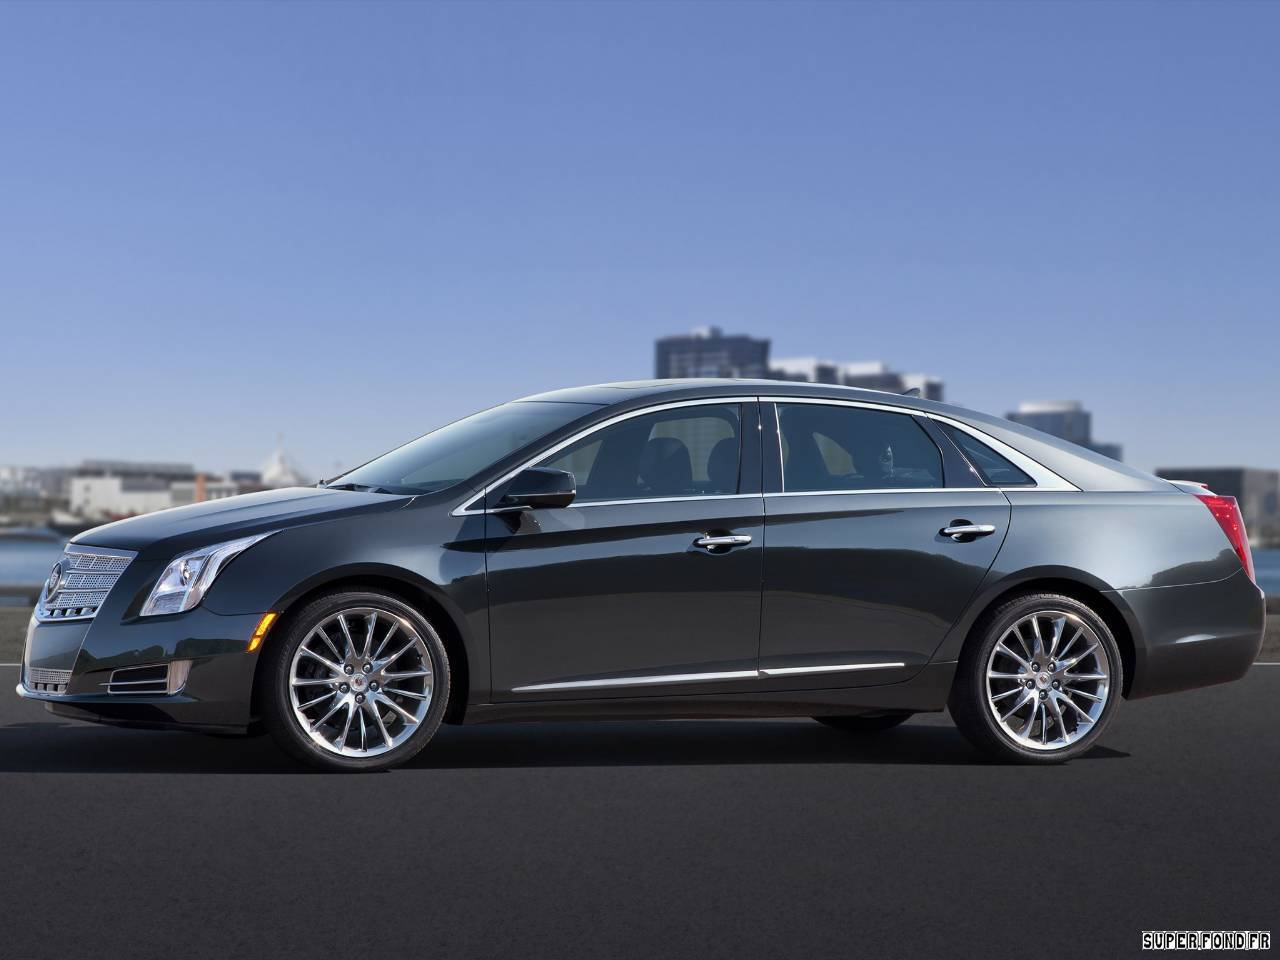 2012 Cadillac XTS Luxury Sedan